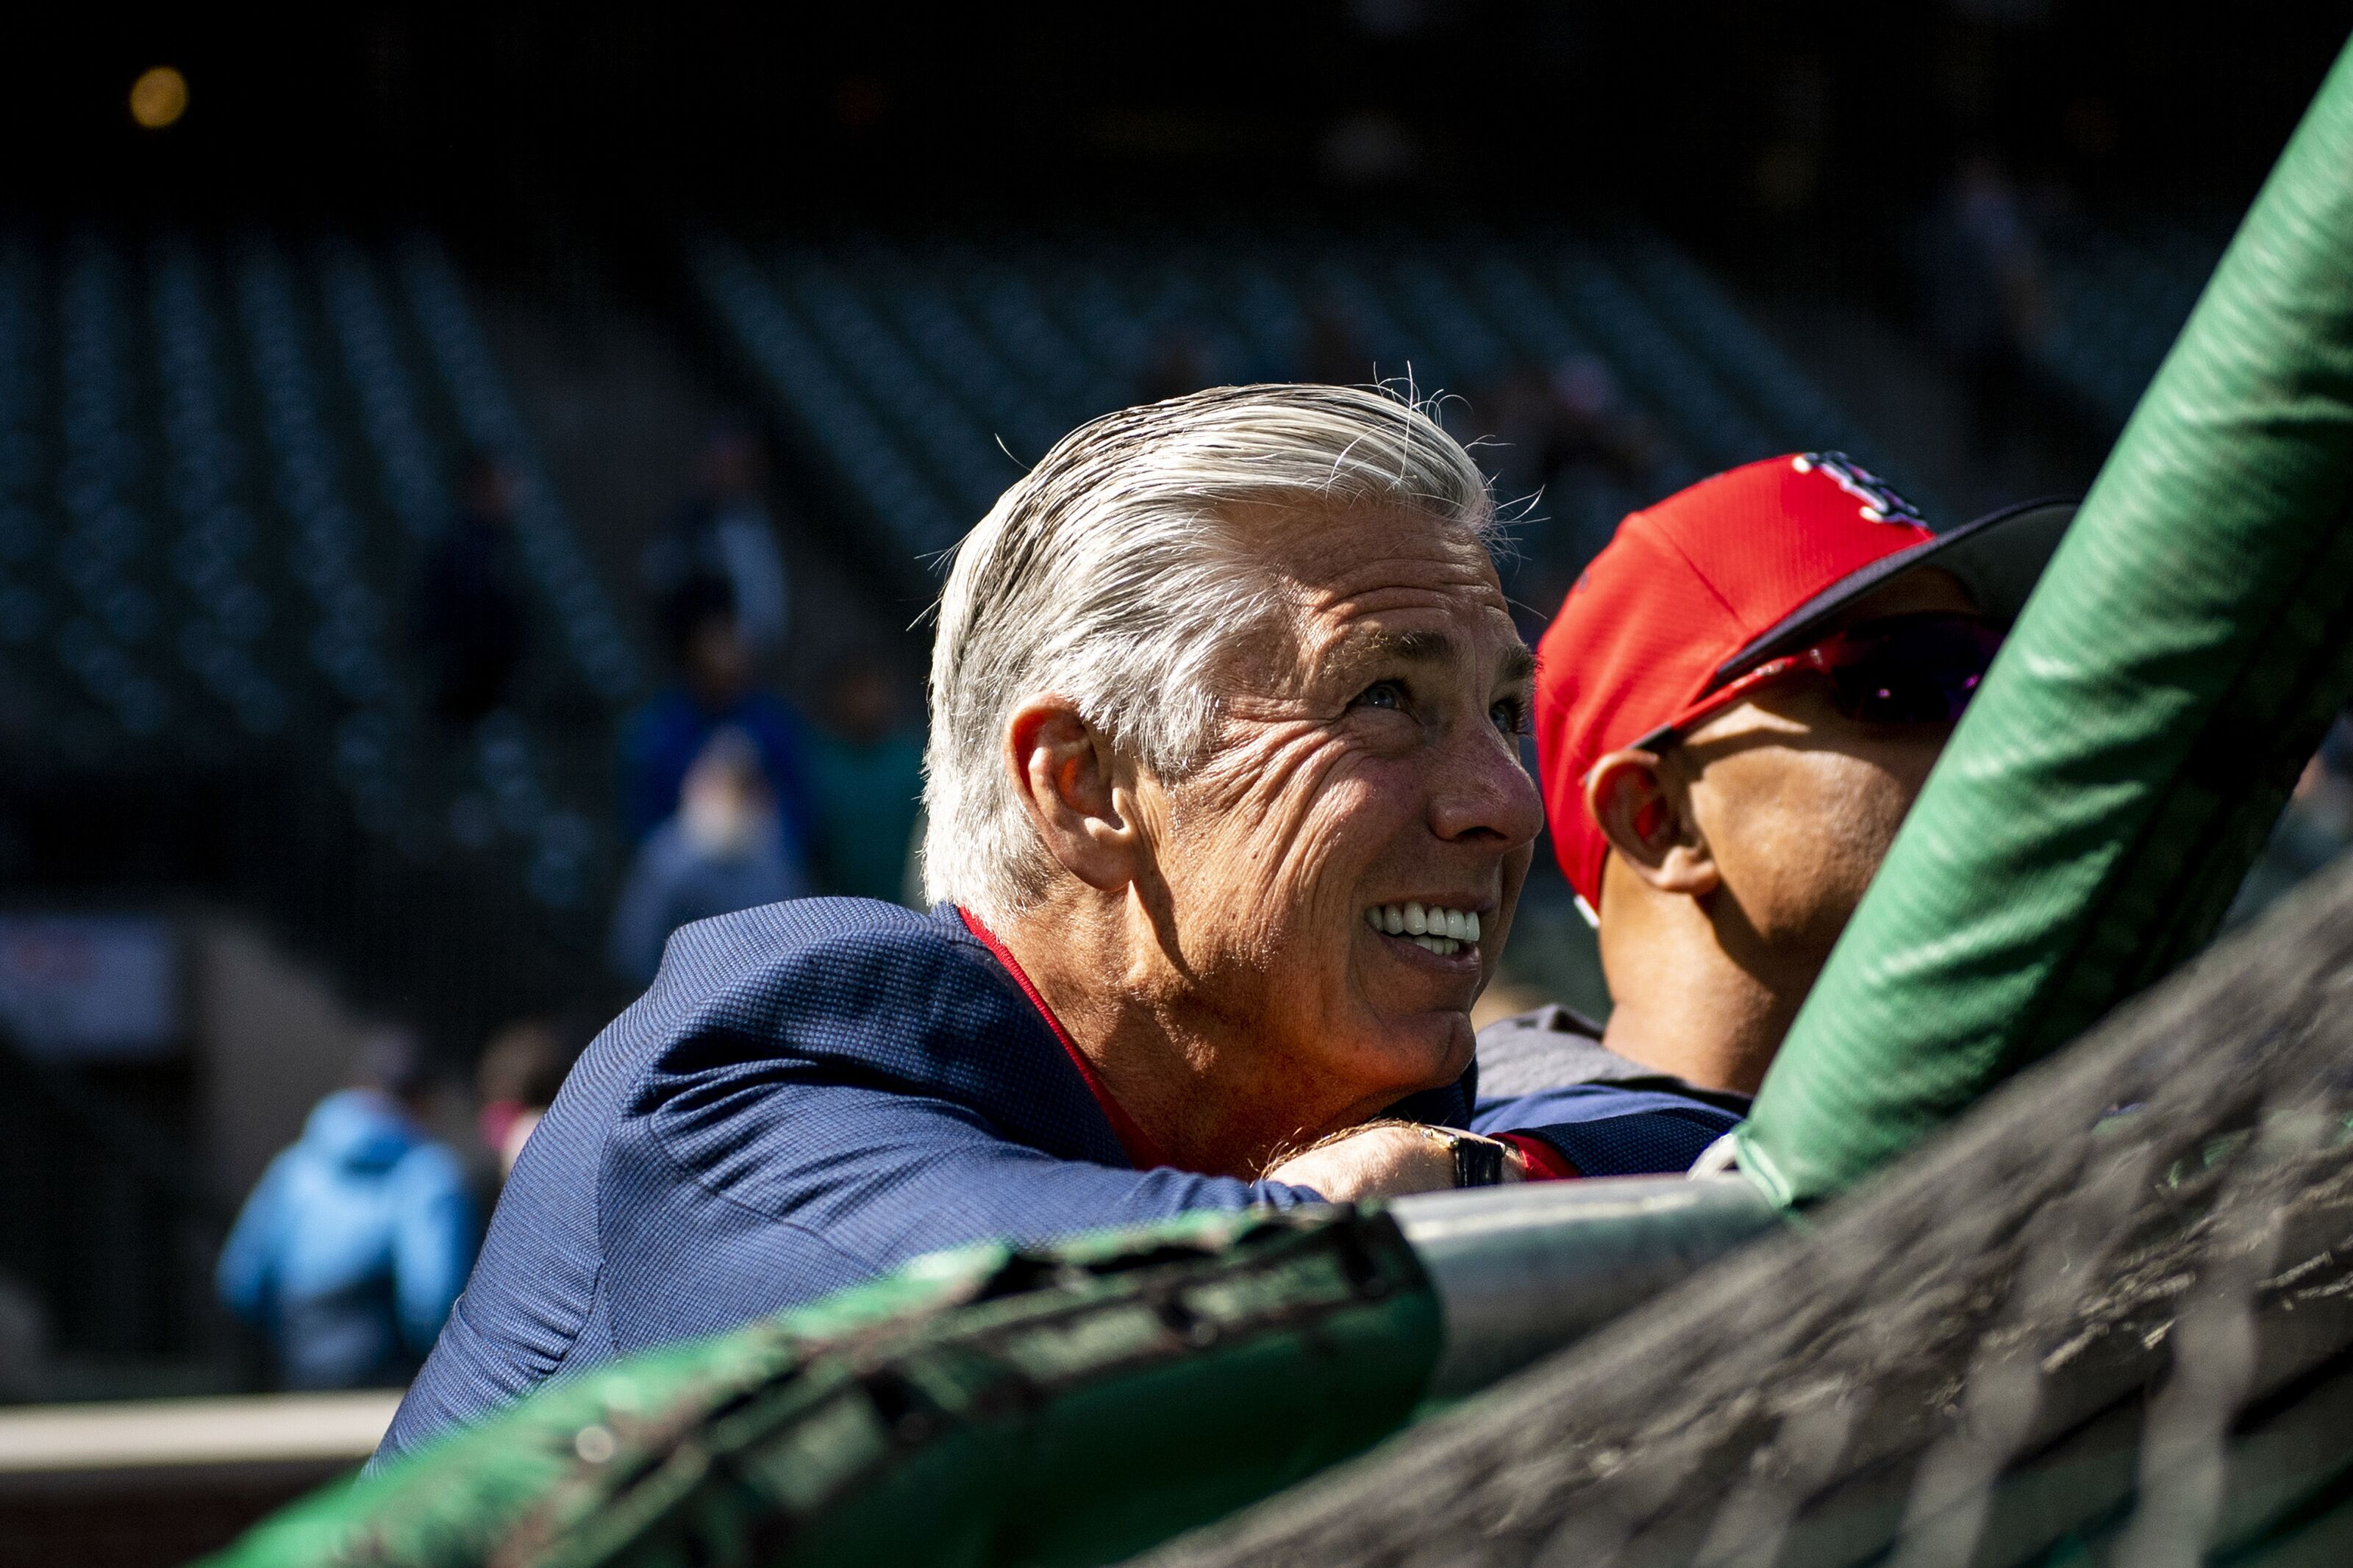 Boston Red Sox: Will Dombrowski be in sell mode at the trade deadline?